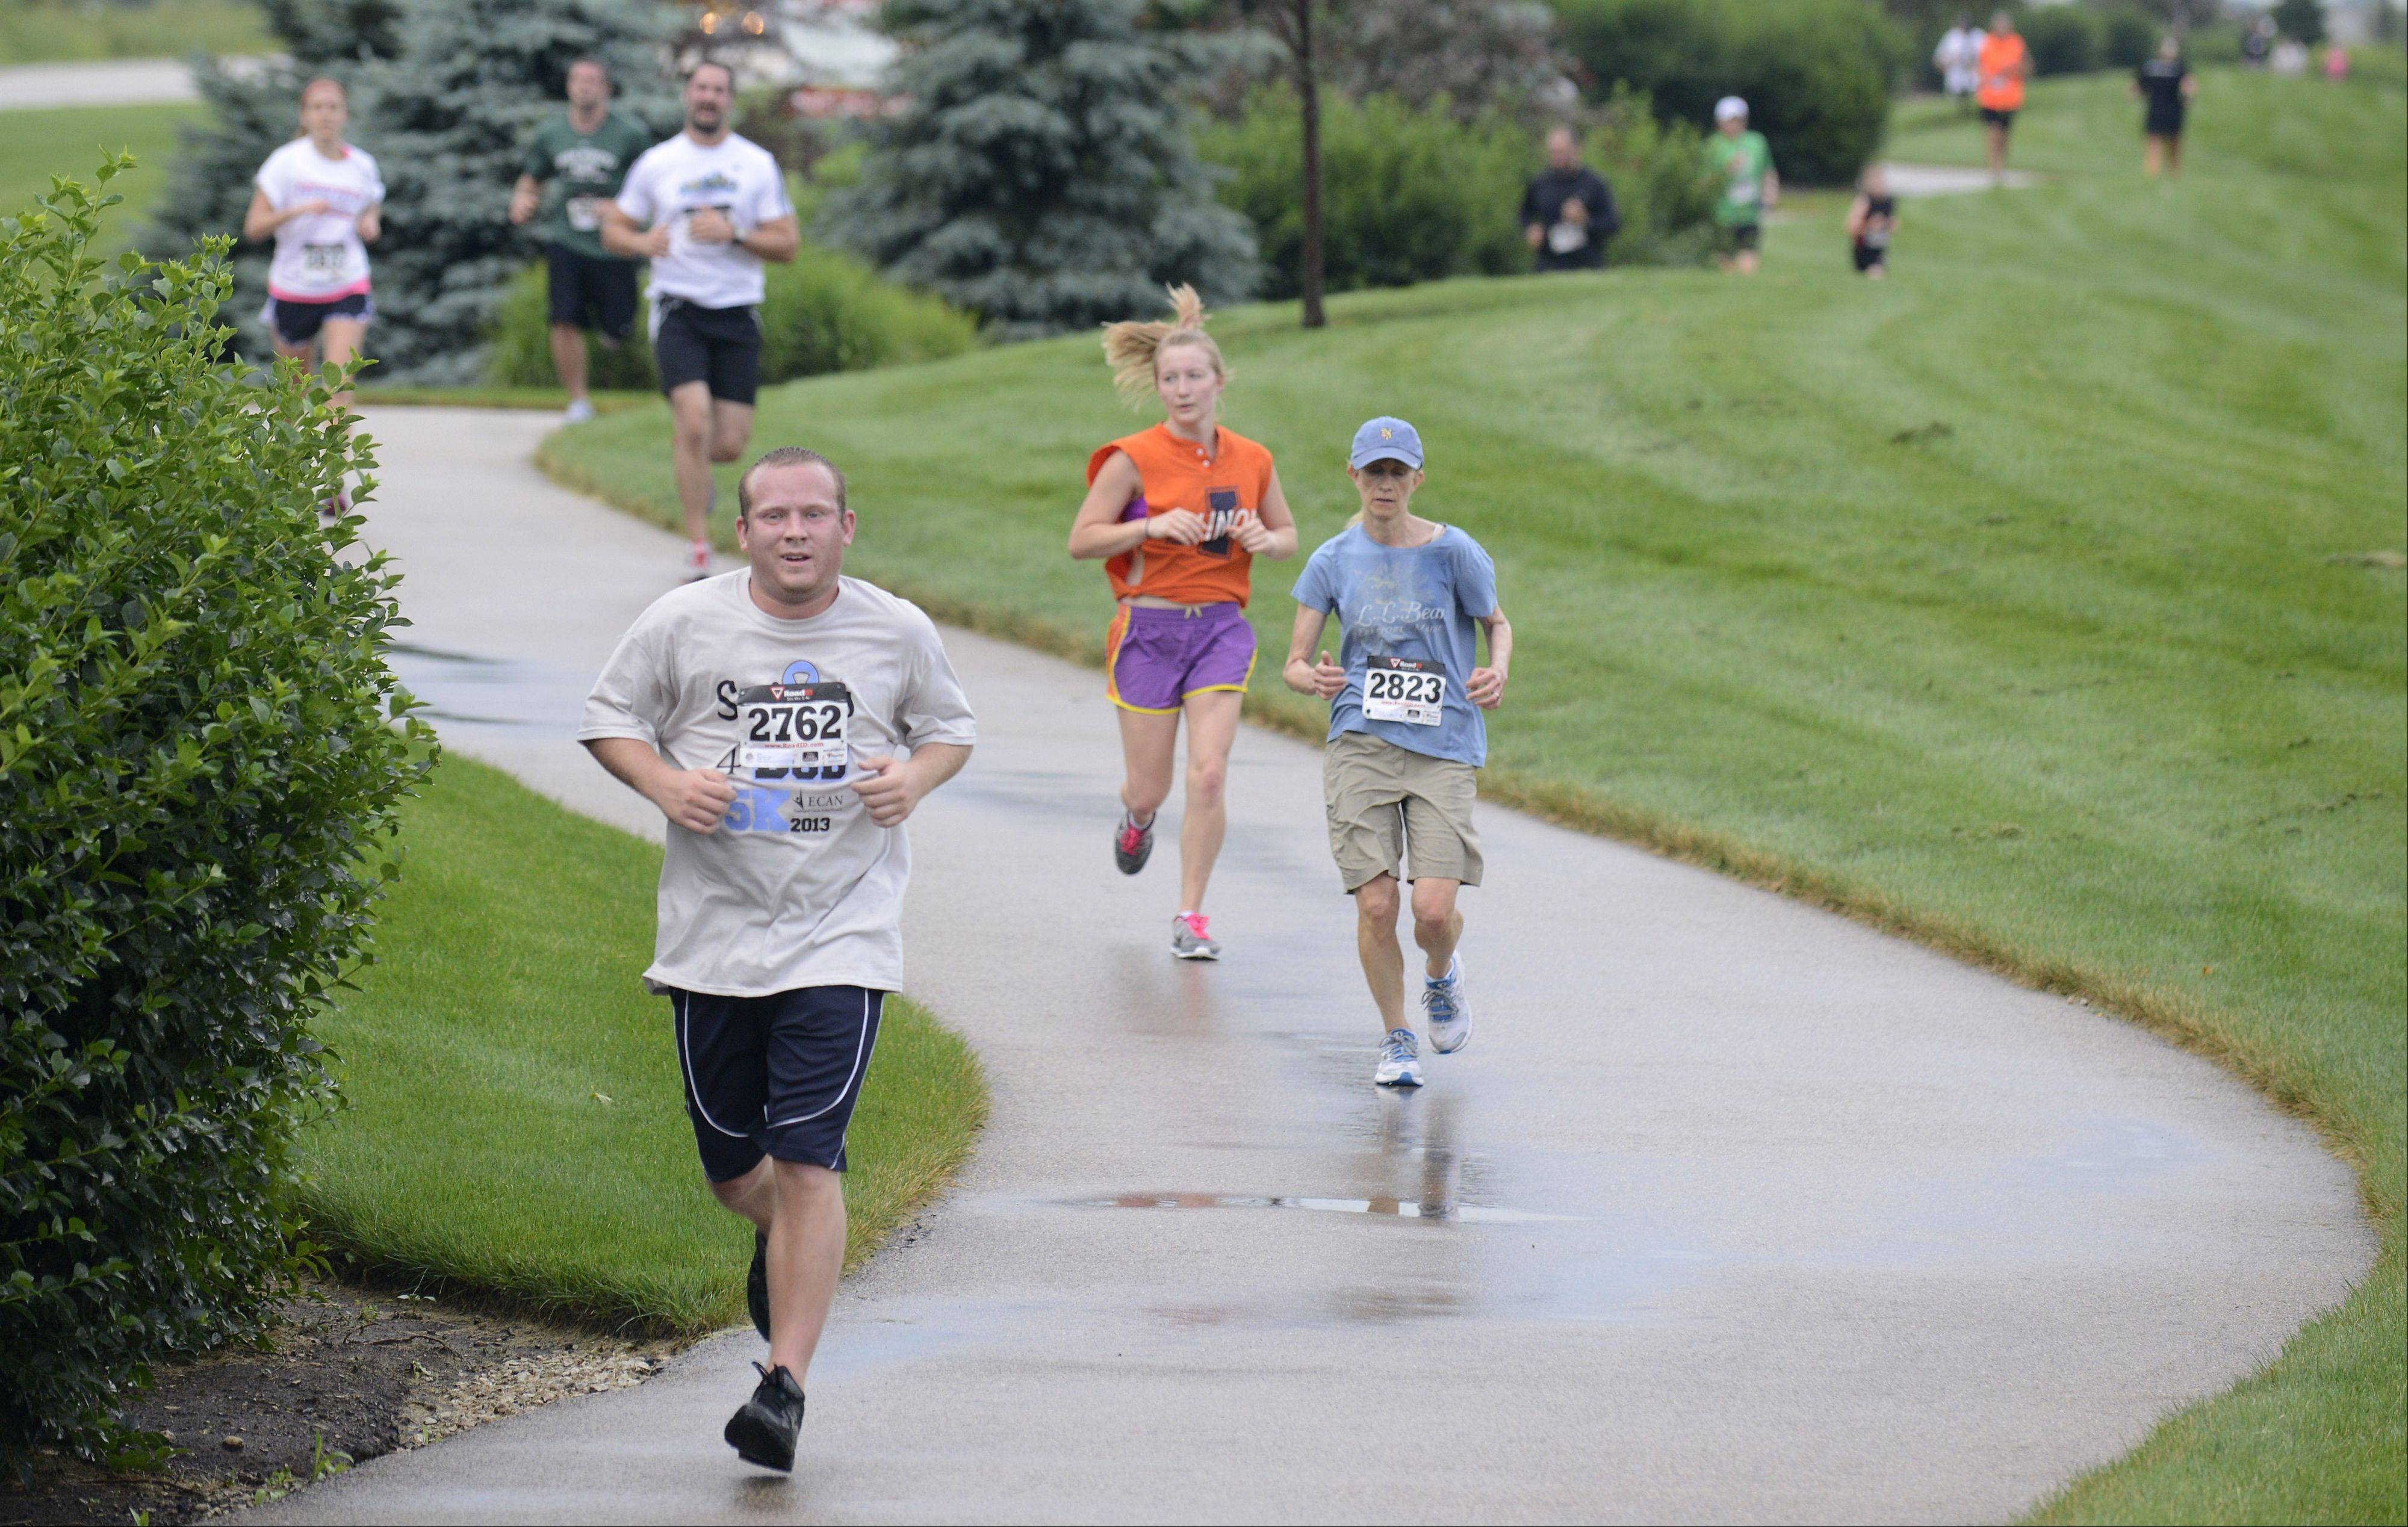 Brian Fahey of Elgin and other runners wind down the path nearing the finish line for the Smiles 4 Bob 5K run in Elgin on Saturday. The run is held in honor of Elginite Bob Geier who passed away from Esophageal Cancer in May 2011 at the age of 52. Fahey has been best friends with Lucas Geier, son of Bob, since childhood and said he considered Bob to be like a father to him.